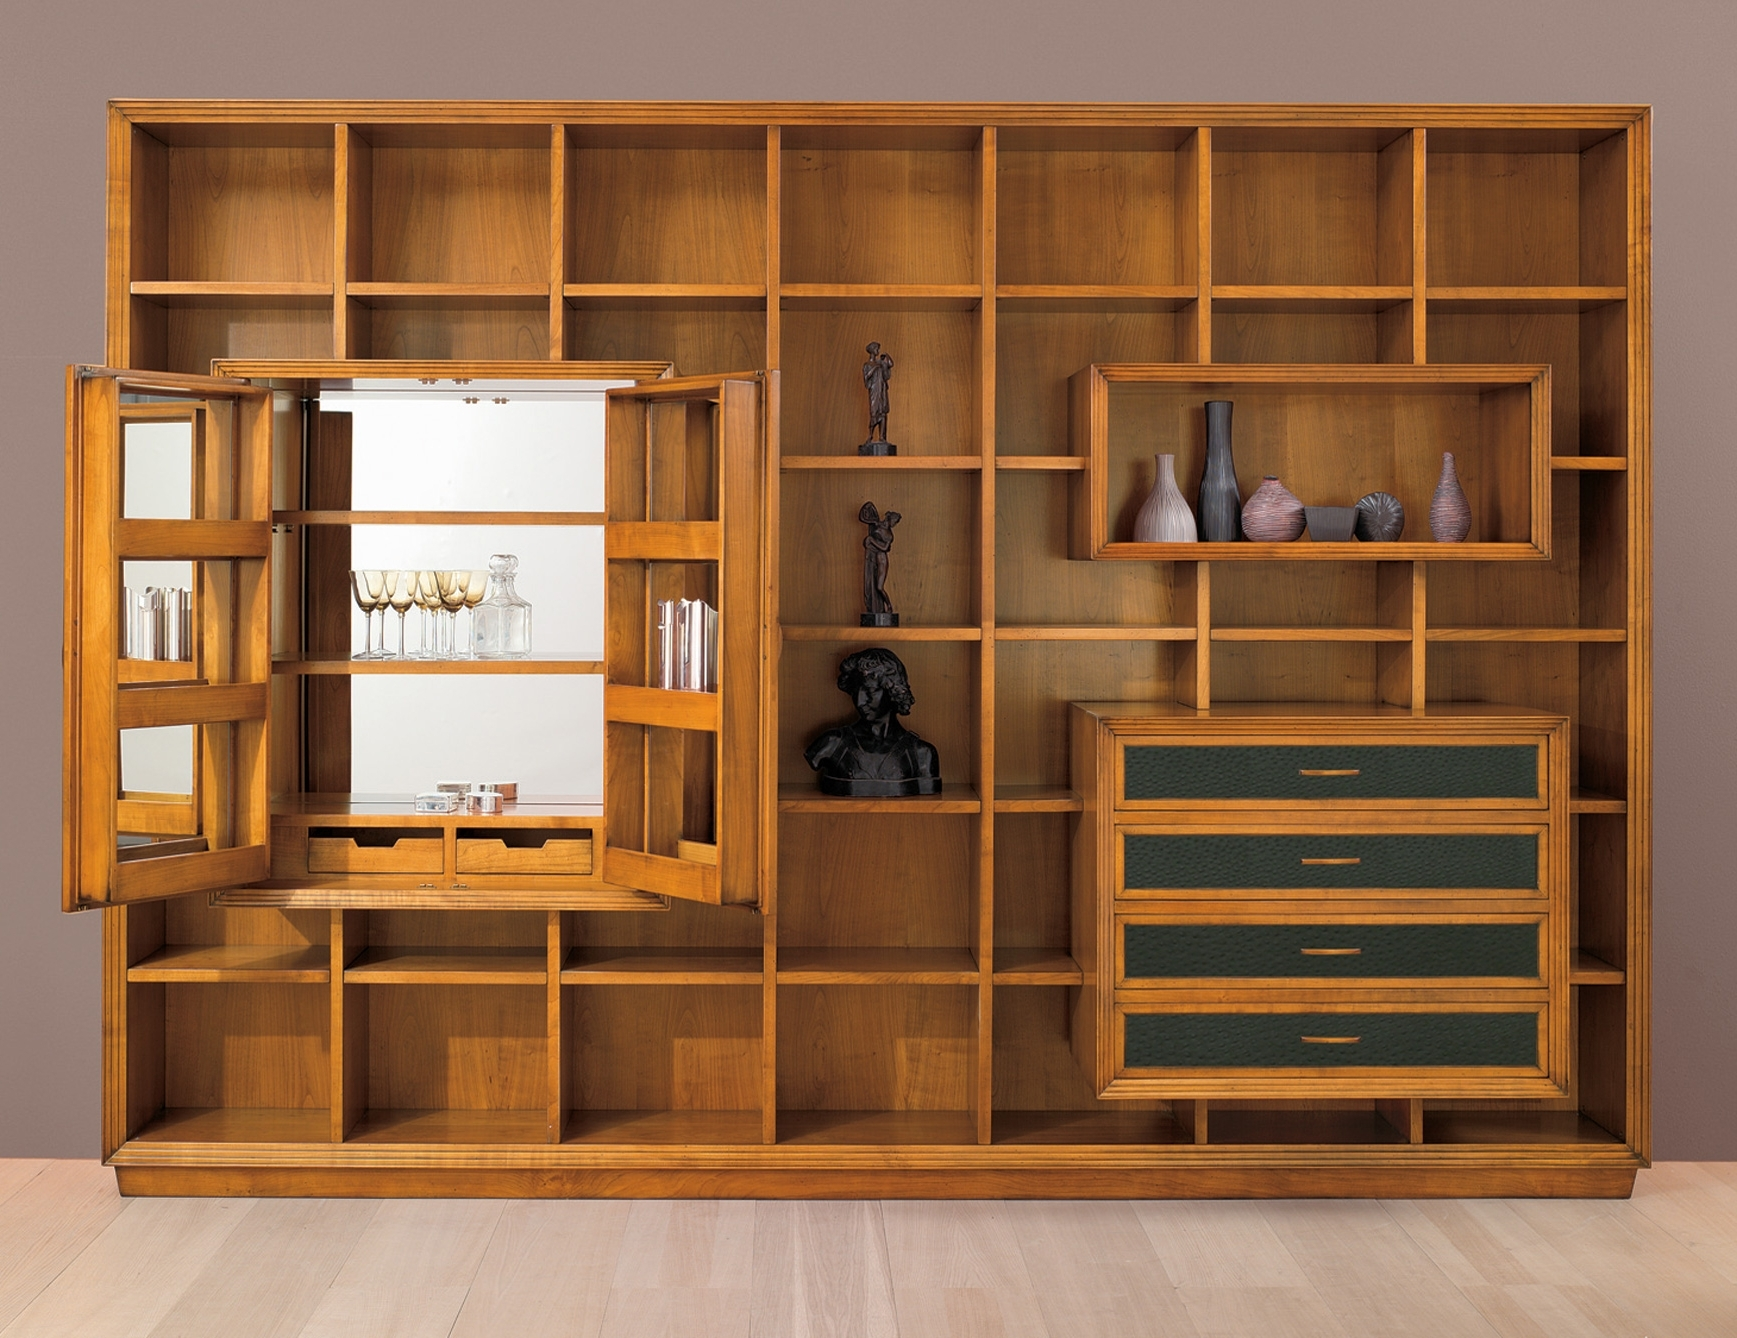 Newest Book Cupboard Designs Intended For Wall Units (View 9 of 15)